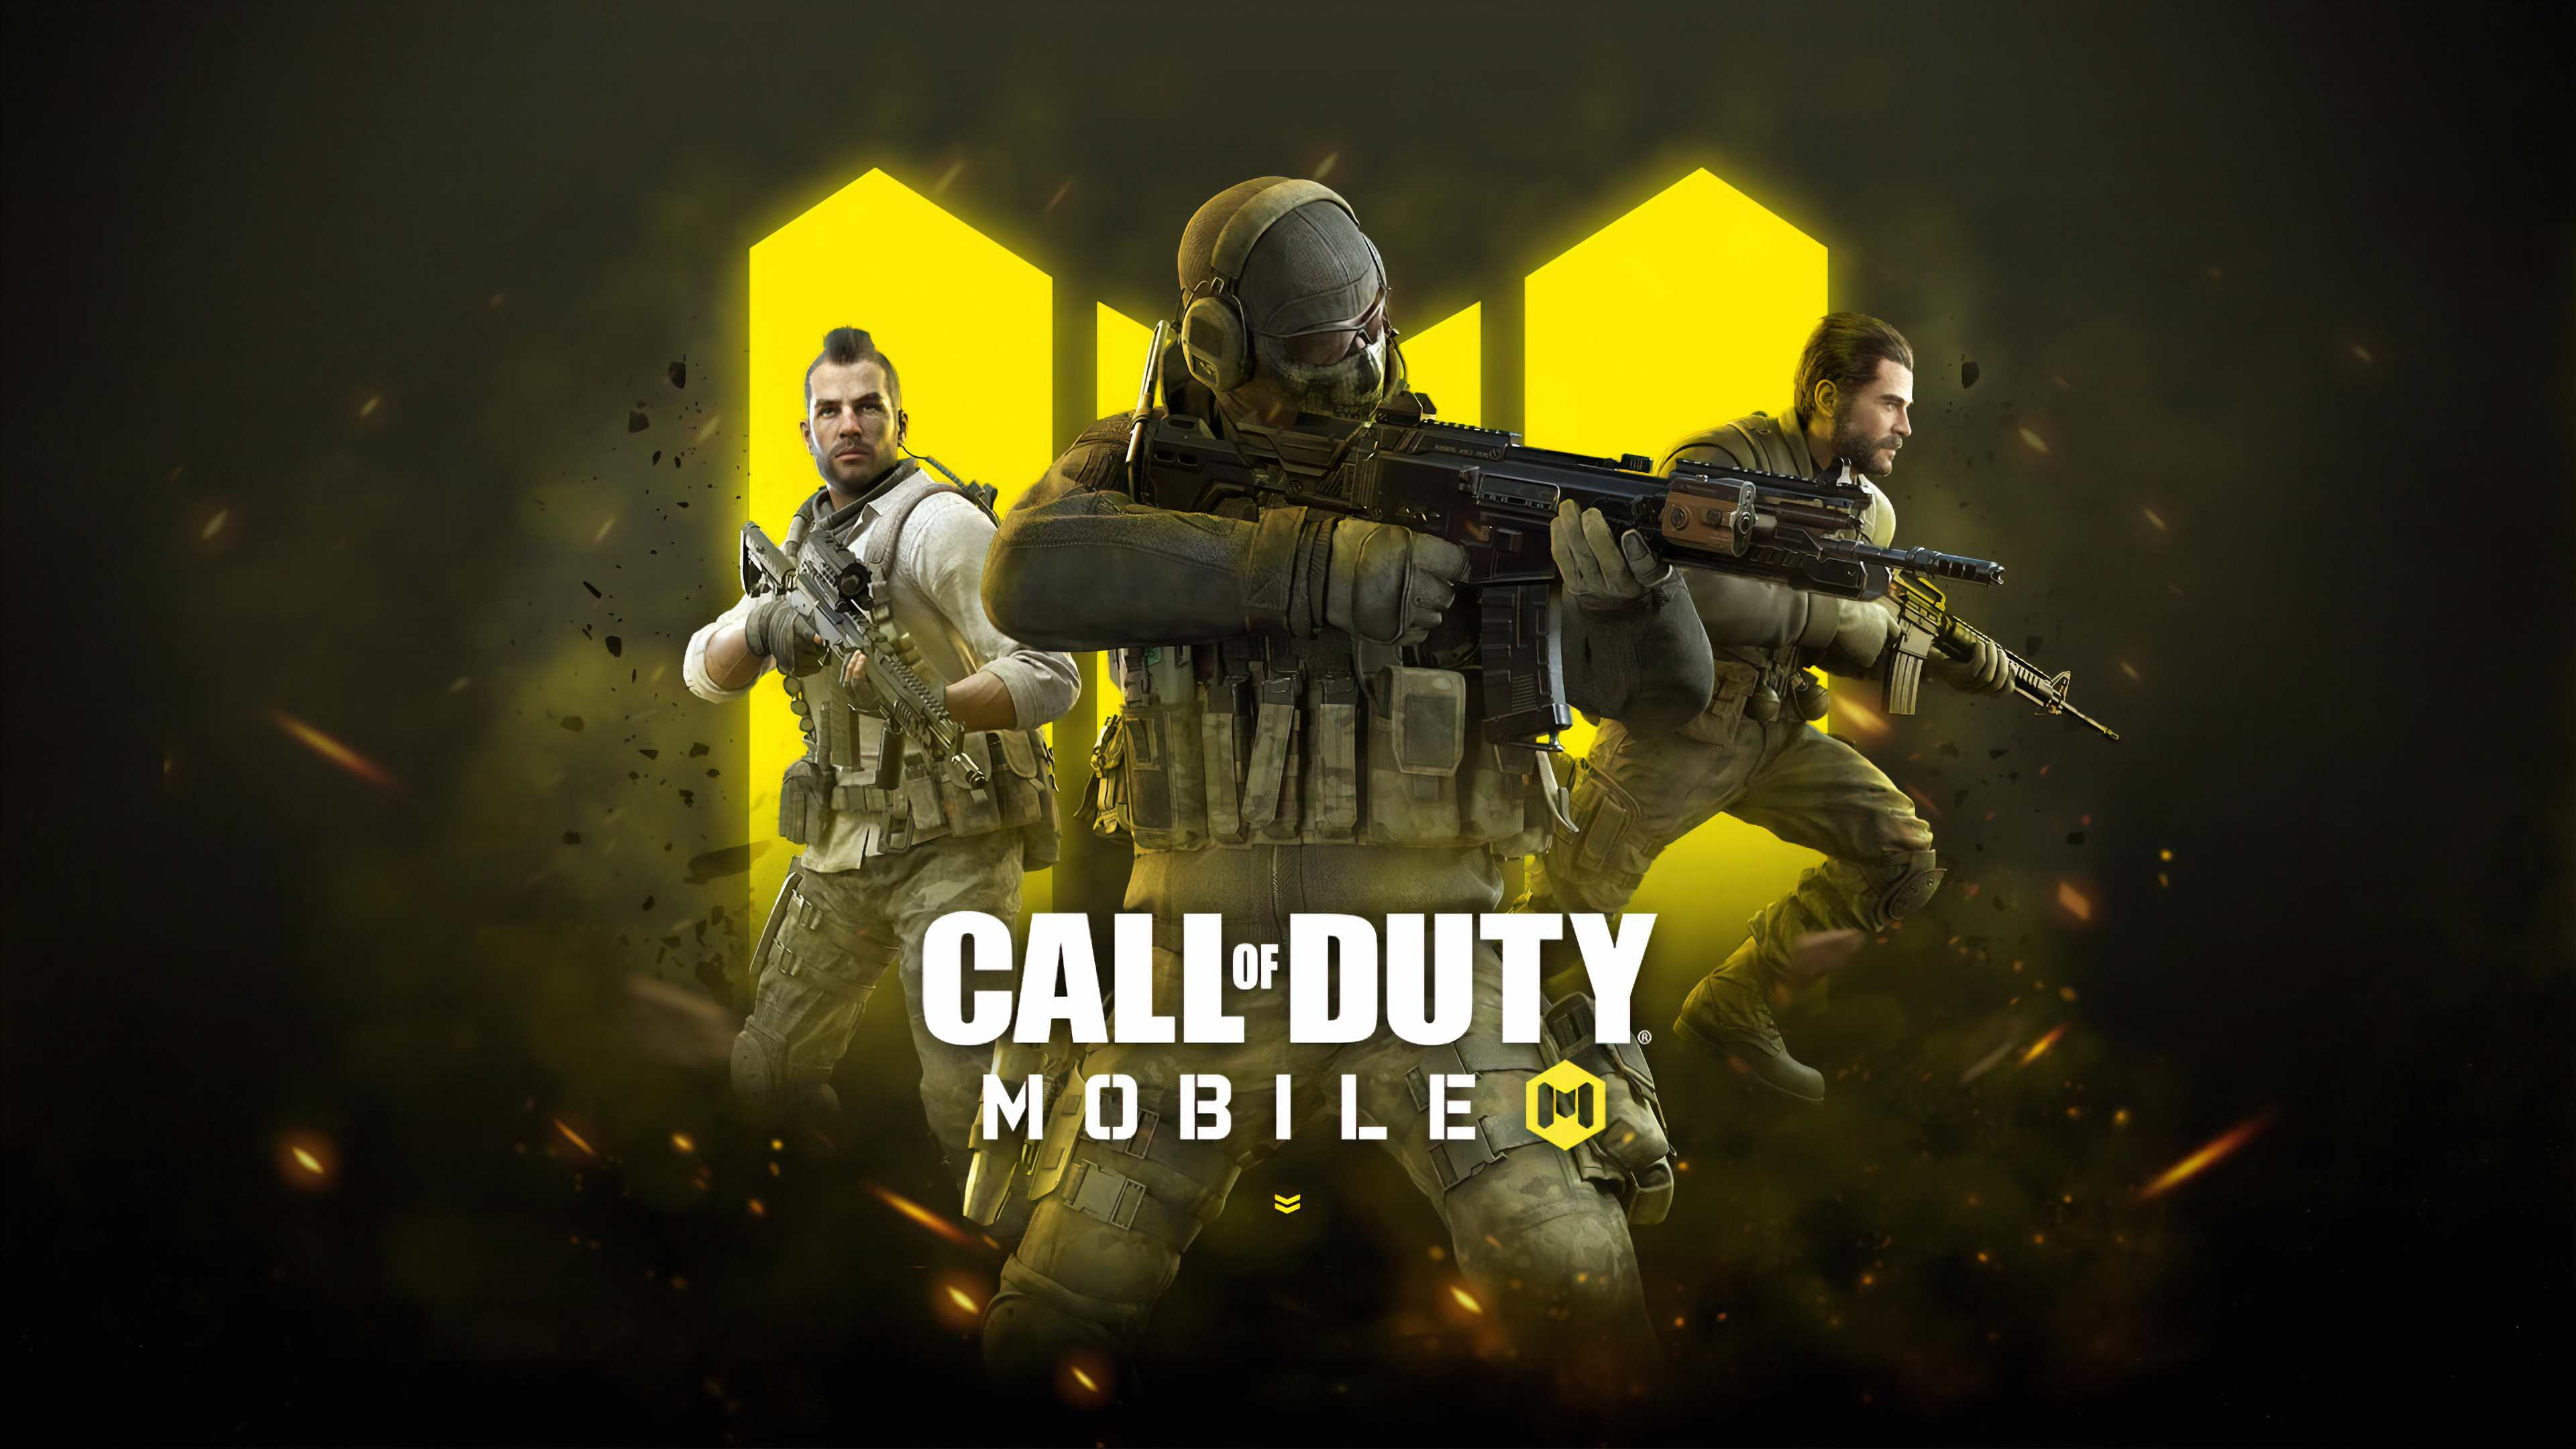 Wallpaper Call of Duty Mobile 2019 computer game poster